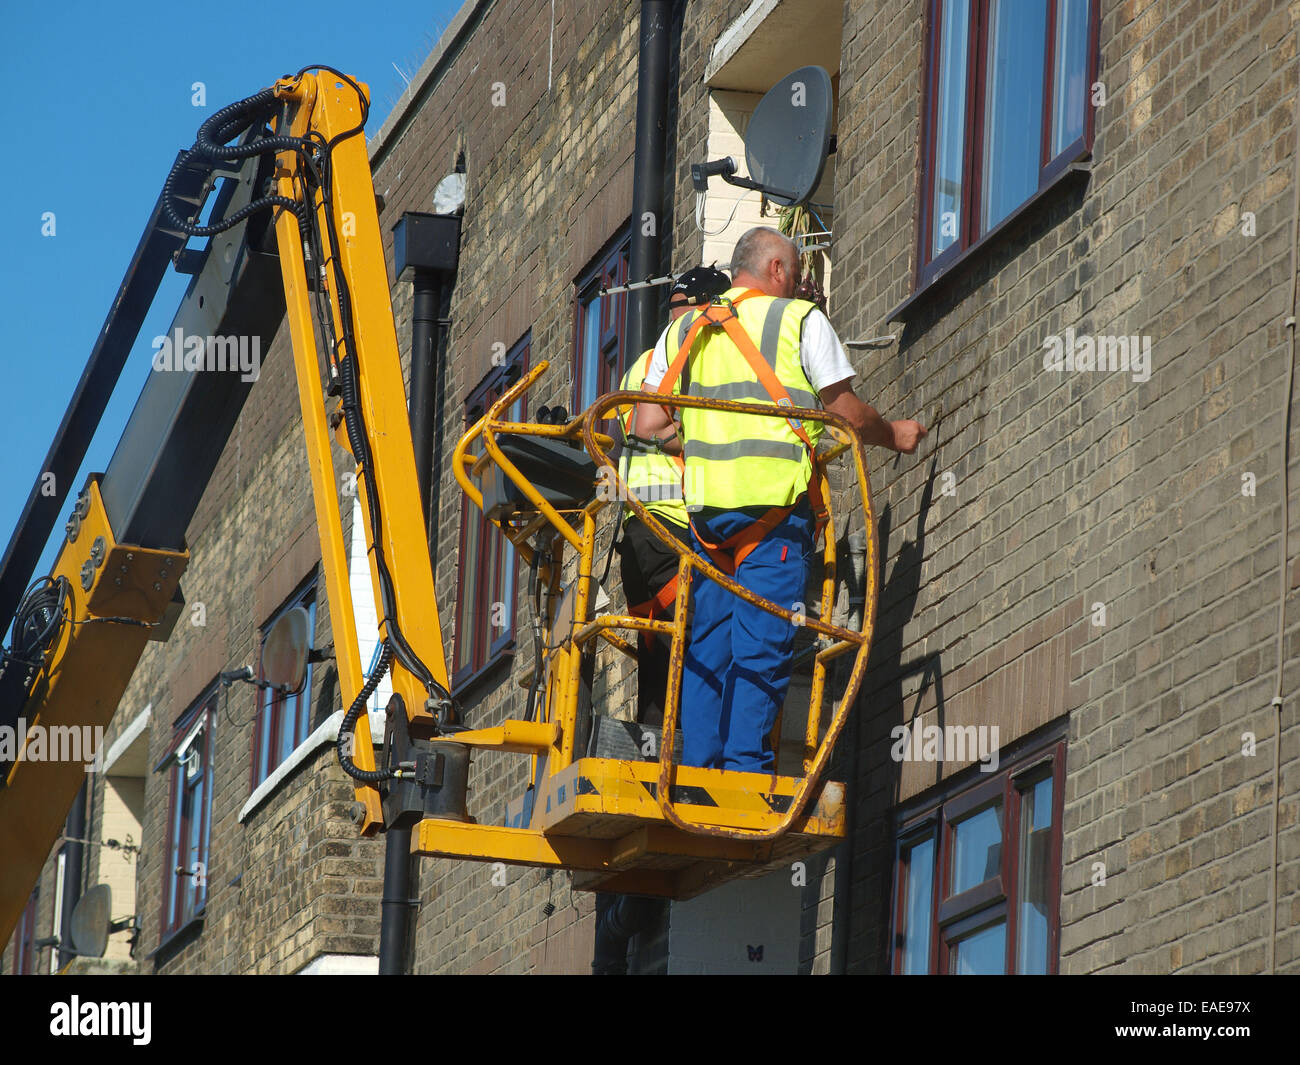 Tradesmen cement pointing the the exterior of a building hoisted up upon a cheery picker vehicle for easy access - Stock Image